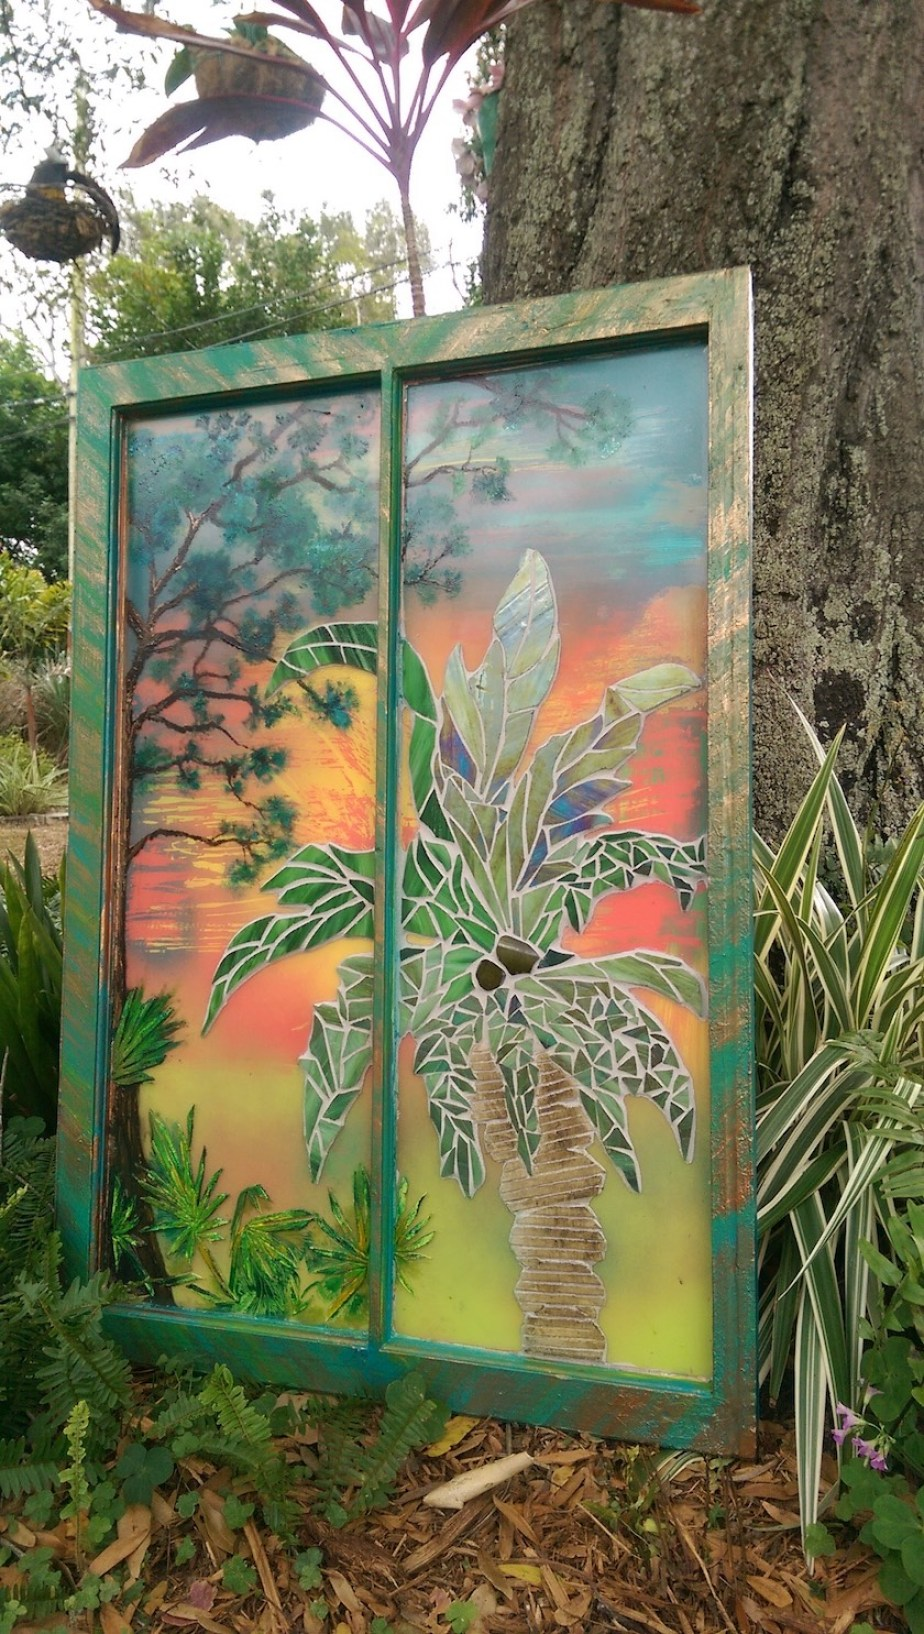 A piece of colorful outdoor art in a rectangle frame